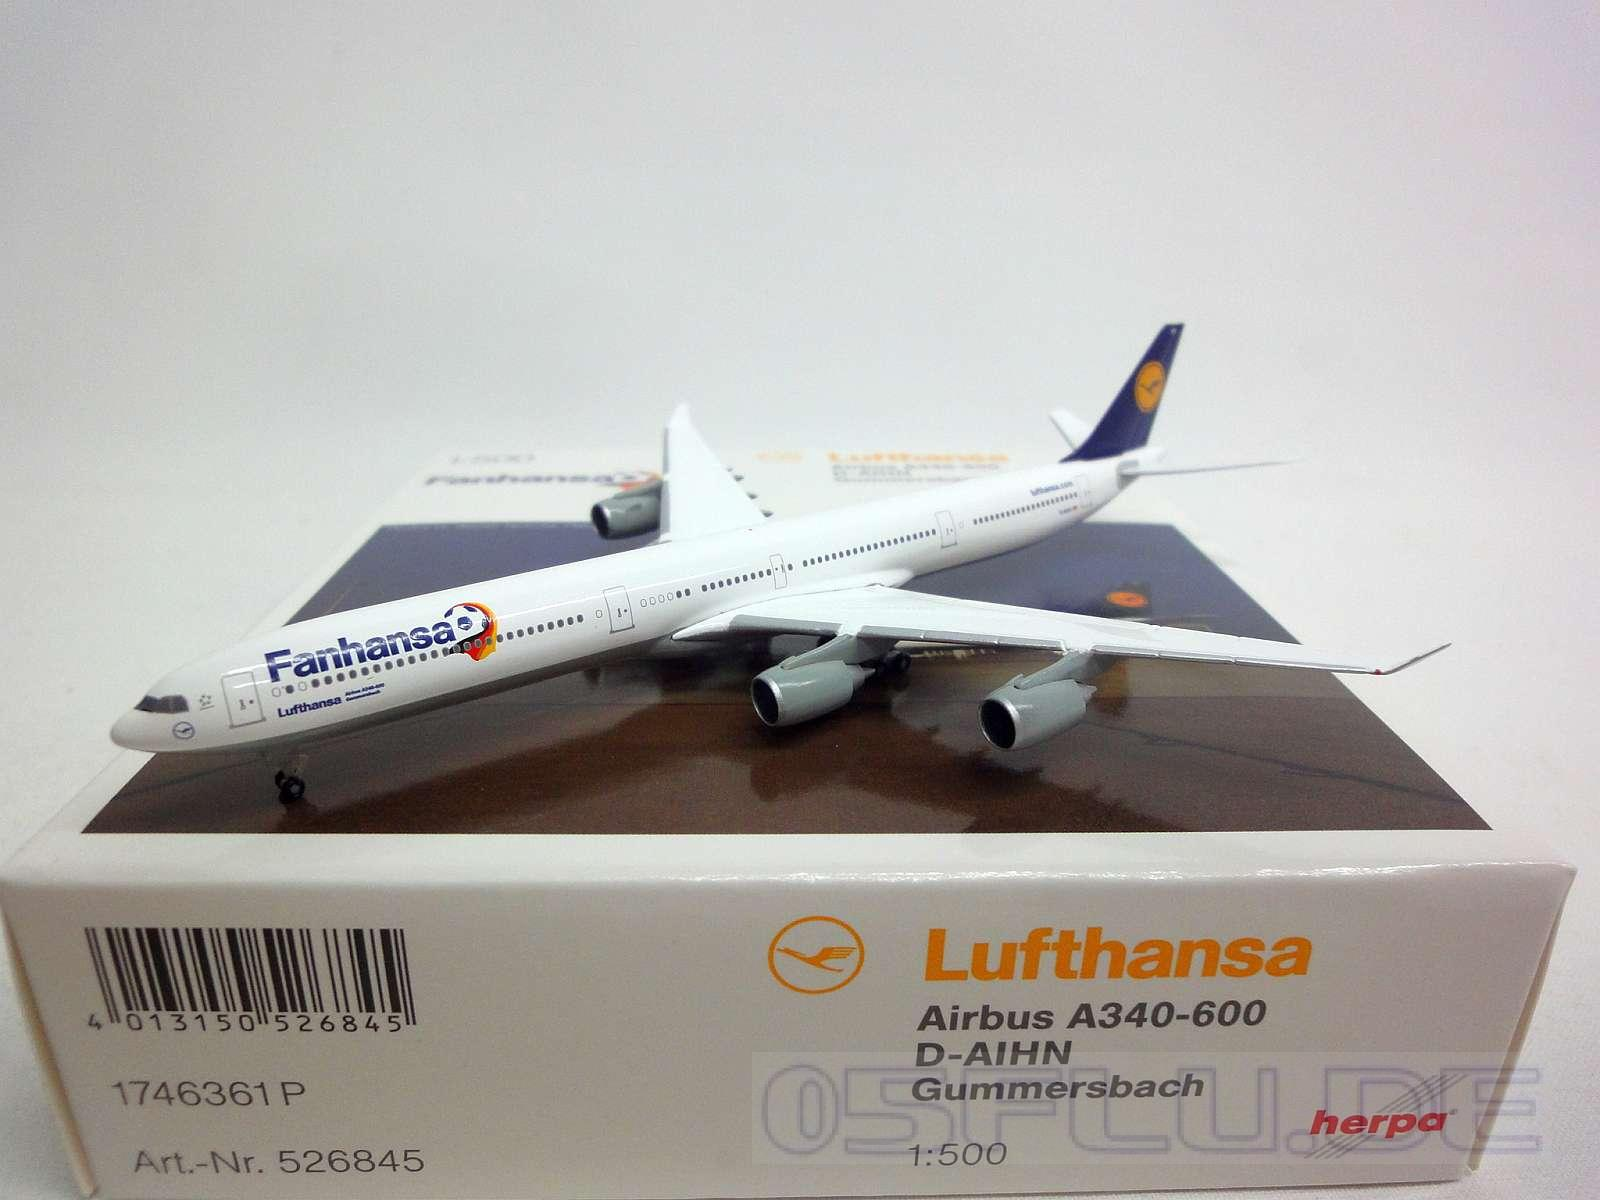 herpa 1 500 526845 lufthansa airbus a340 600 d aihn gummersbach neu ebay. Black Bedroom Furniture Sets. Home Design Ideas